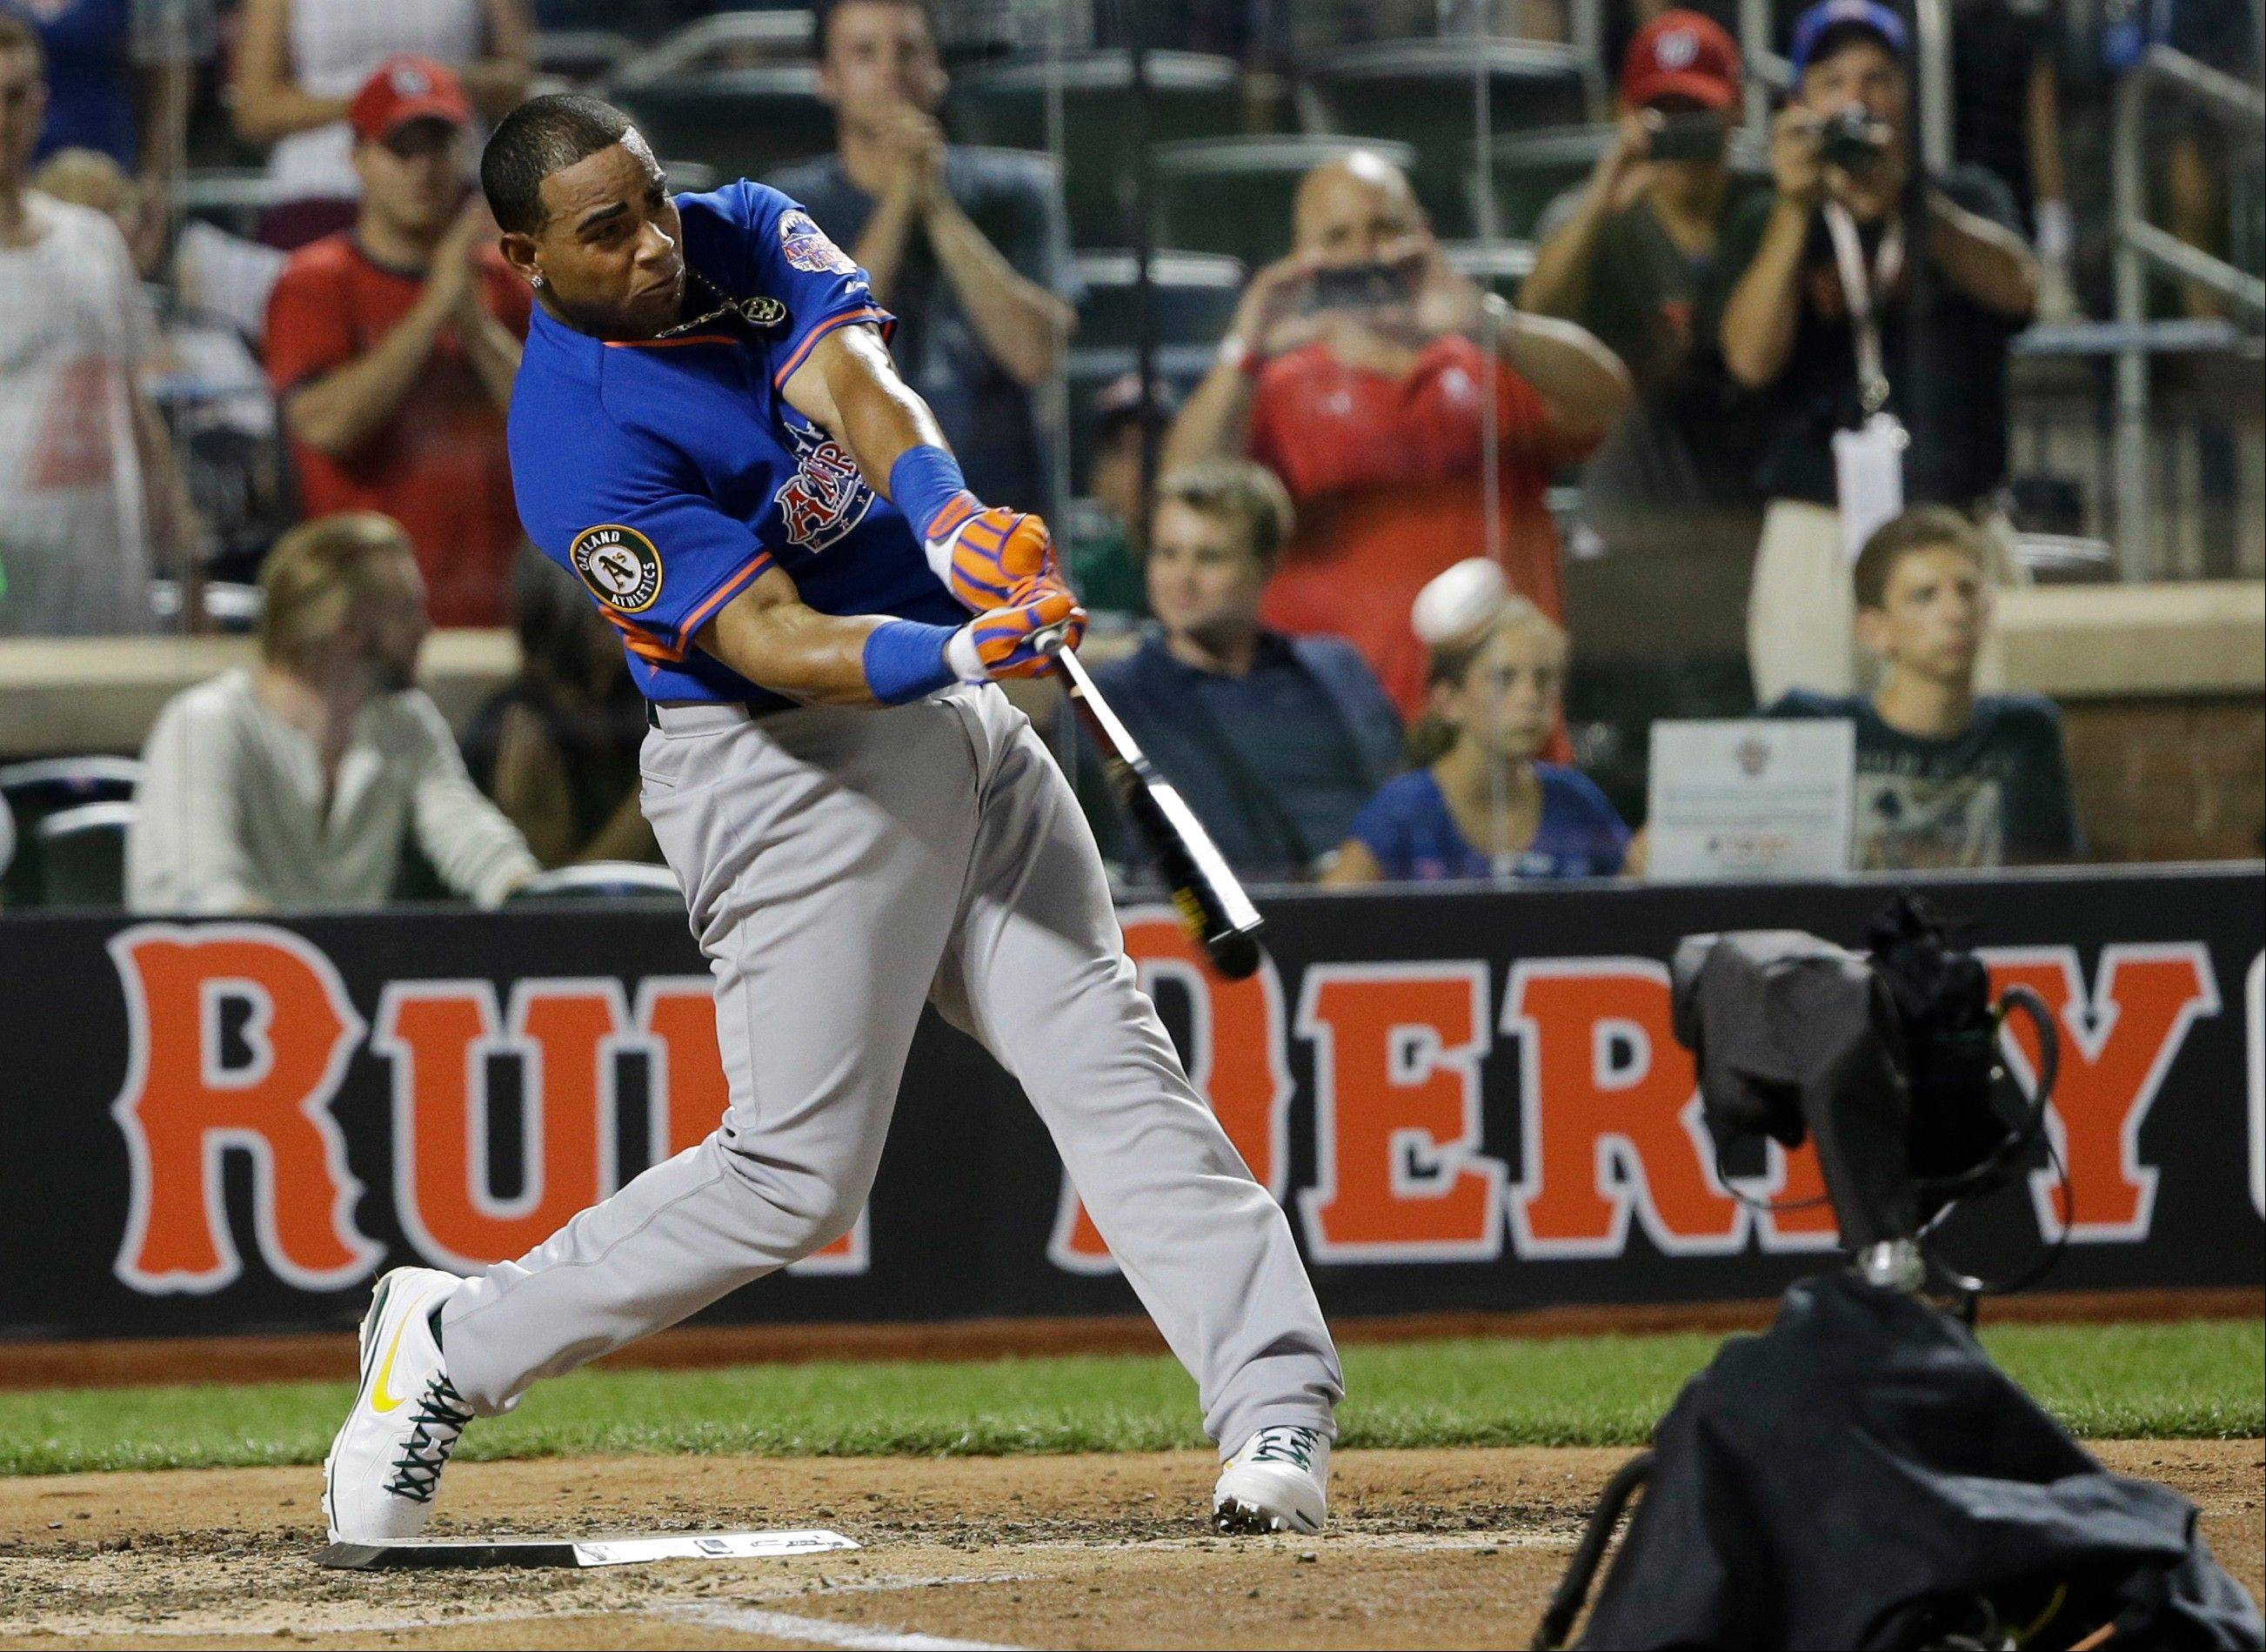 American League slugger Yoenis Cespedes of the Oakland Athletics hits his ninth home run in Monday�s third round to win the MLB All-Star Home Run Derby at Citi Field in New York.